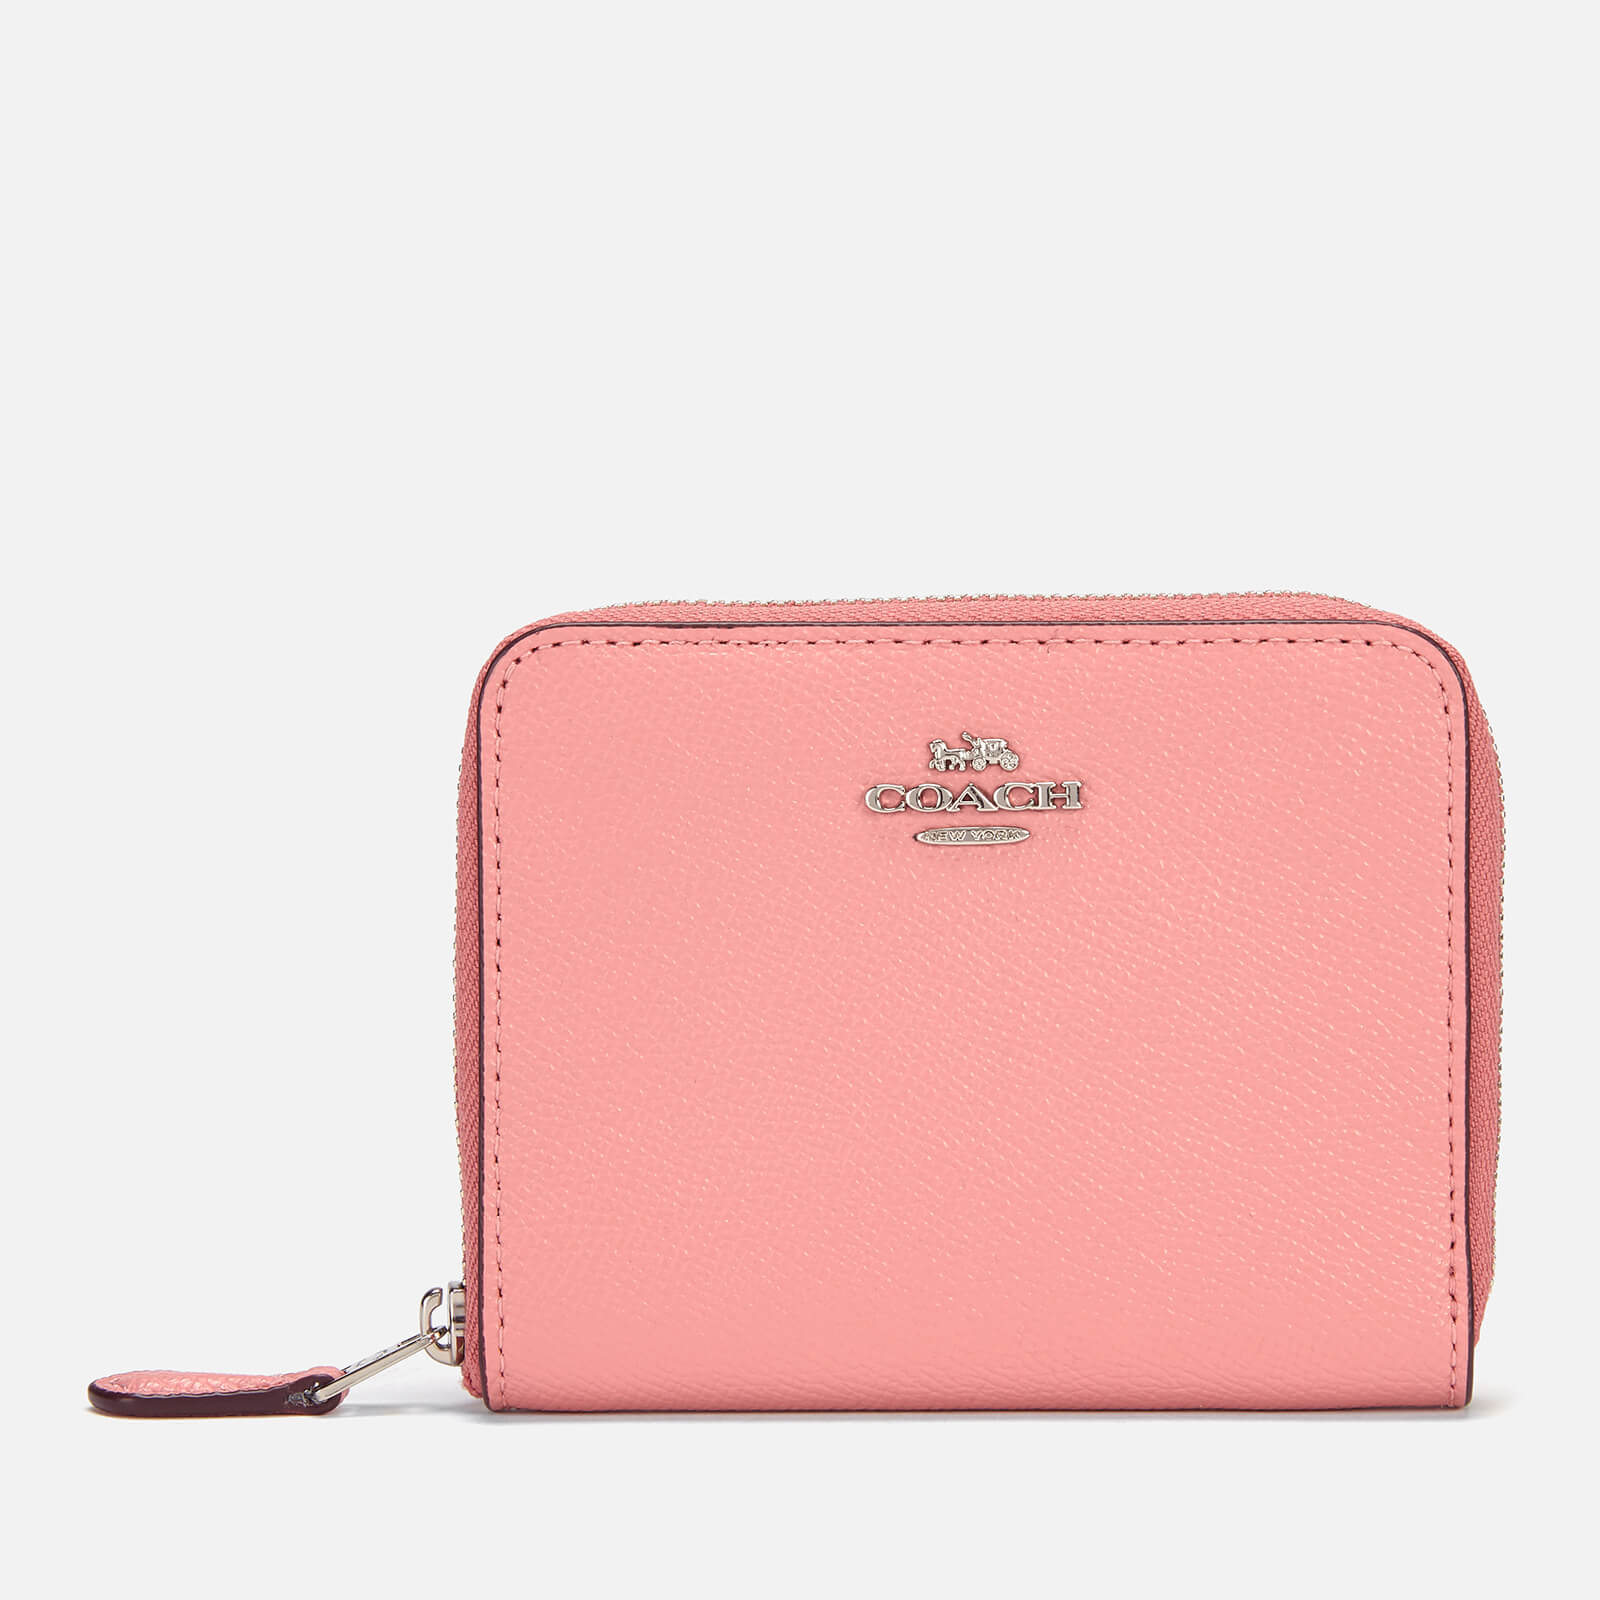 2d4e62765cc4 Coach Women s Crossgrain Leather Small Zip Around Wallet - Light Blush -  Free UK Delivery over £50